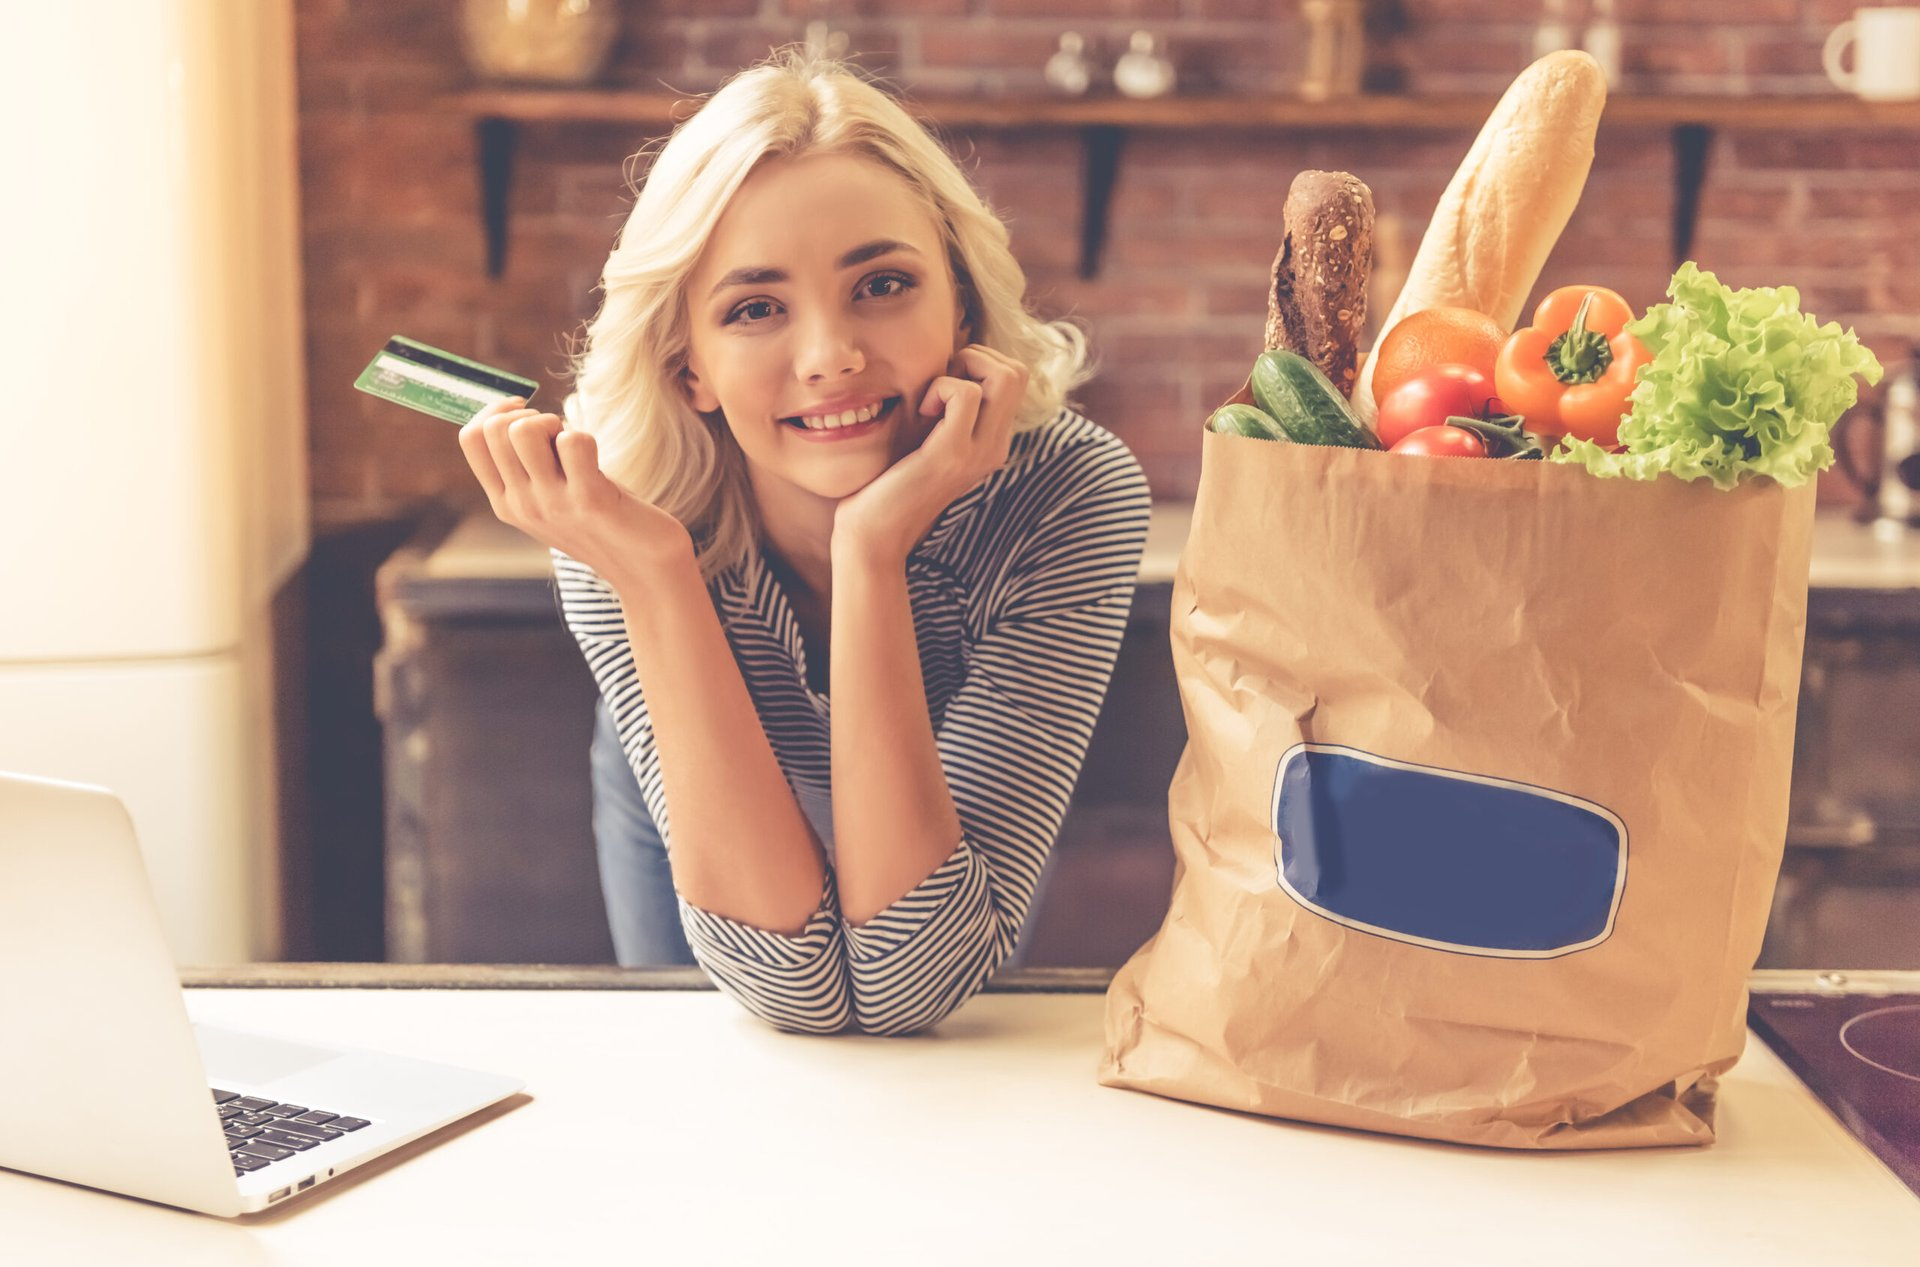 Woman who ordered groceries online